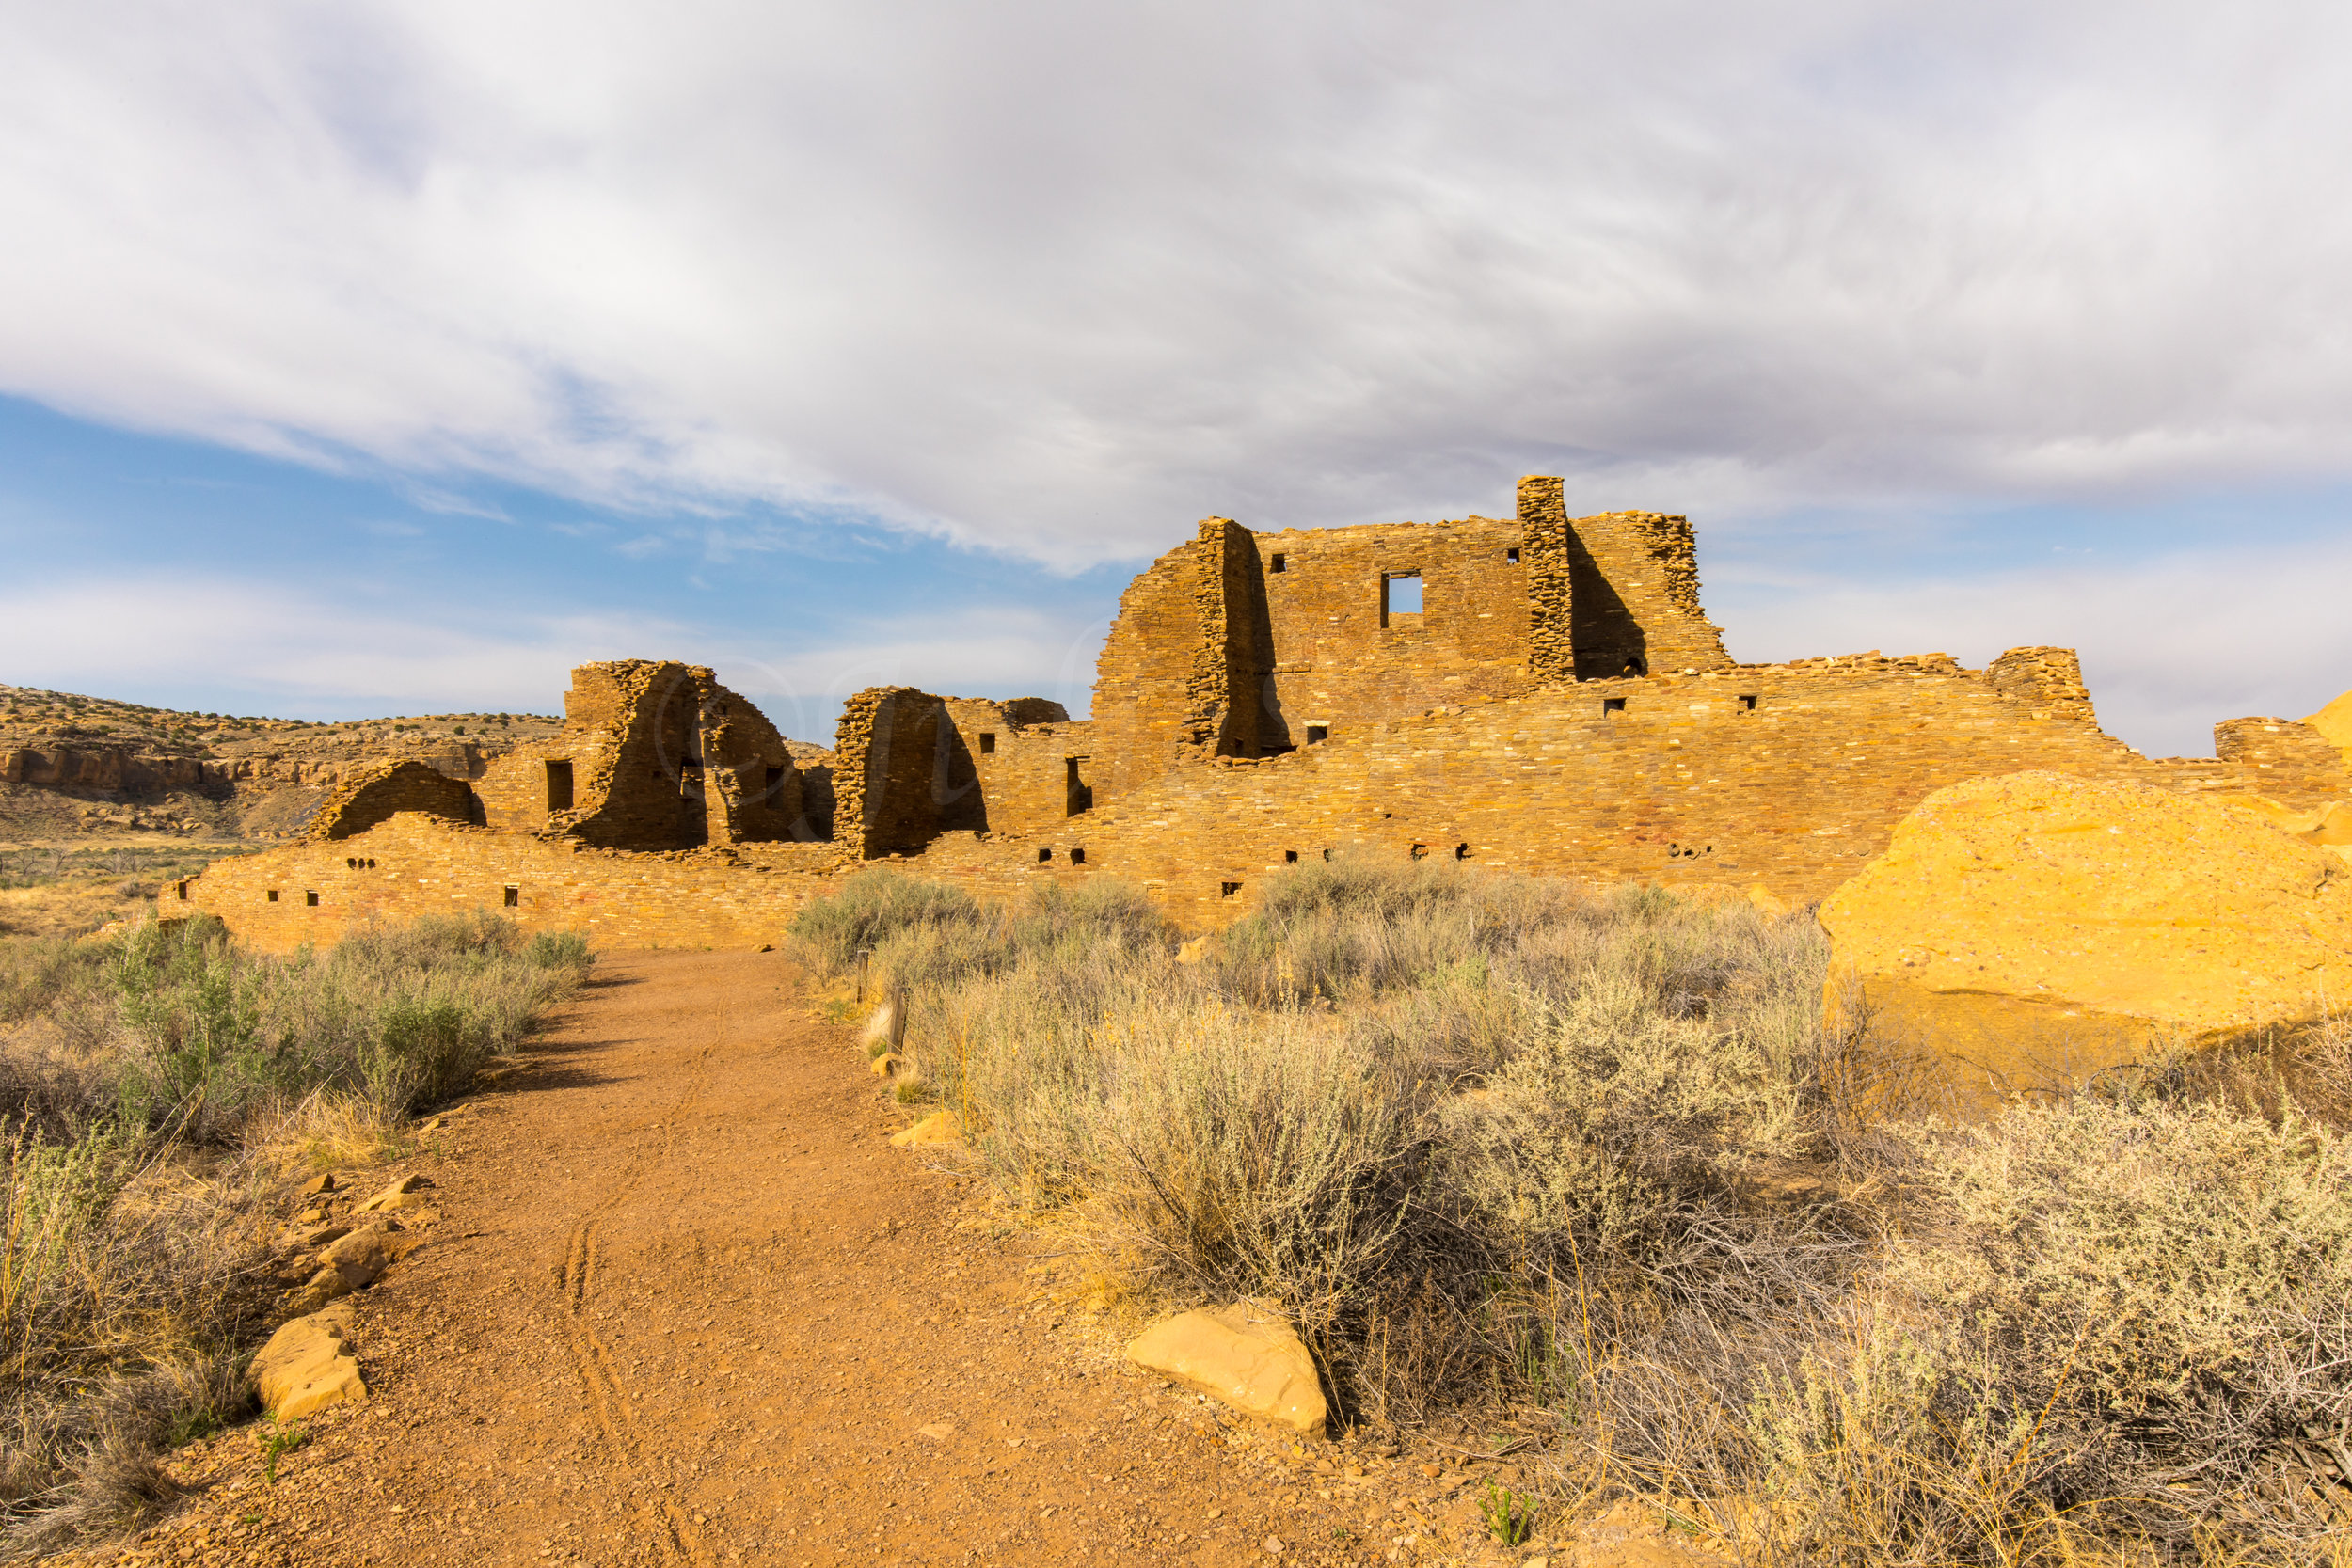 Chaco National Park, Image # 6274